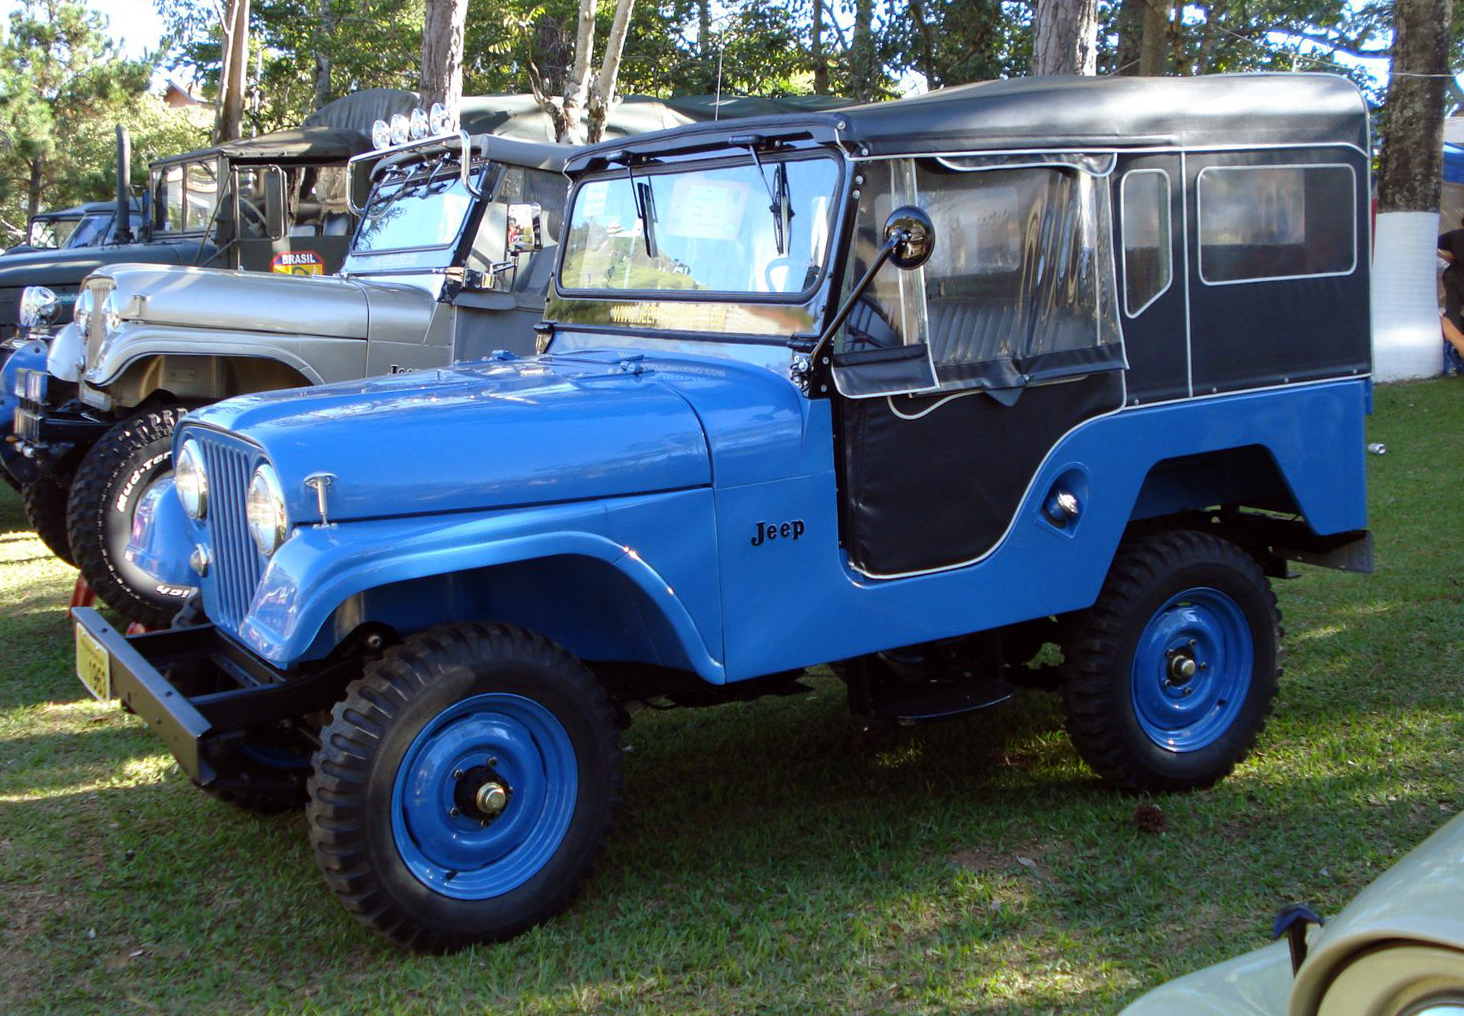 Jeep Willys Renegade >> File:1963 Willys Jeep Universal.jpg - Wikimedia Commons